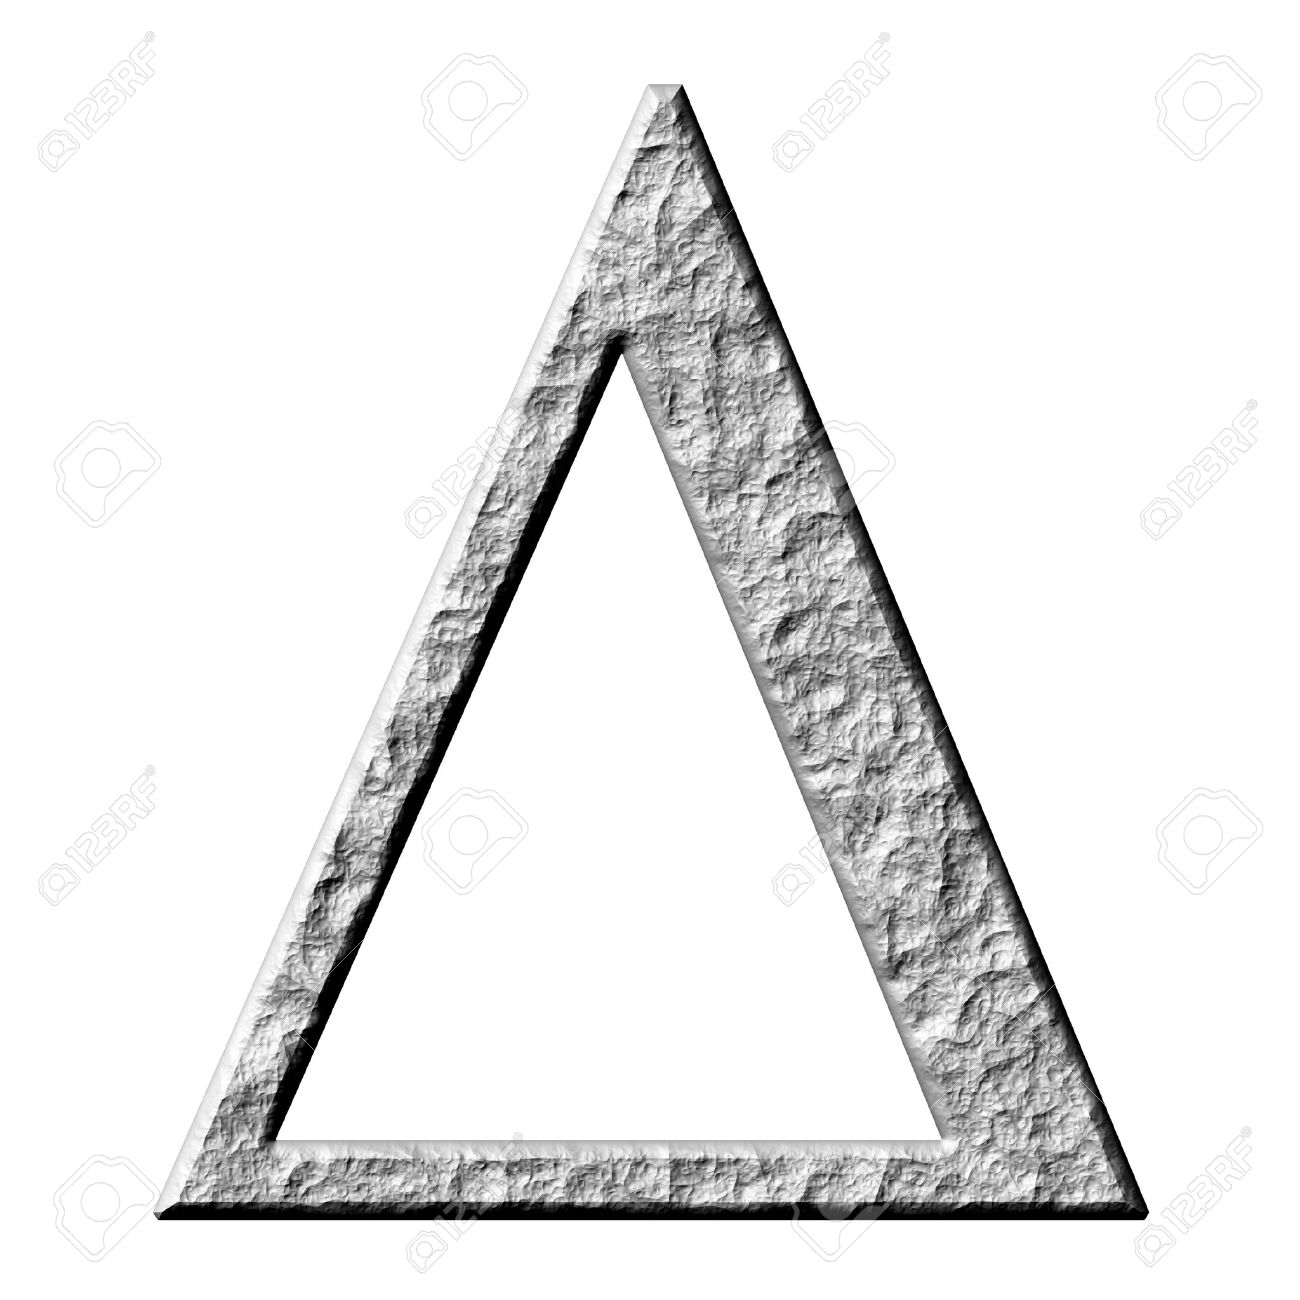 triangular greek letter clipart delta symbol clipground 42179